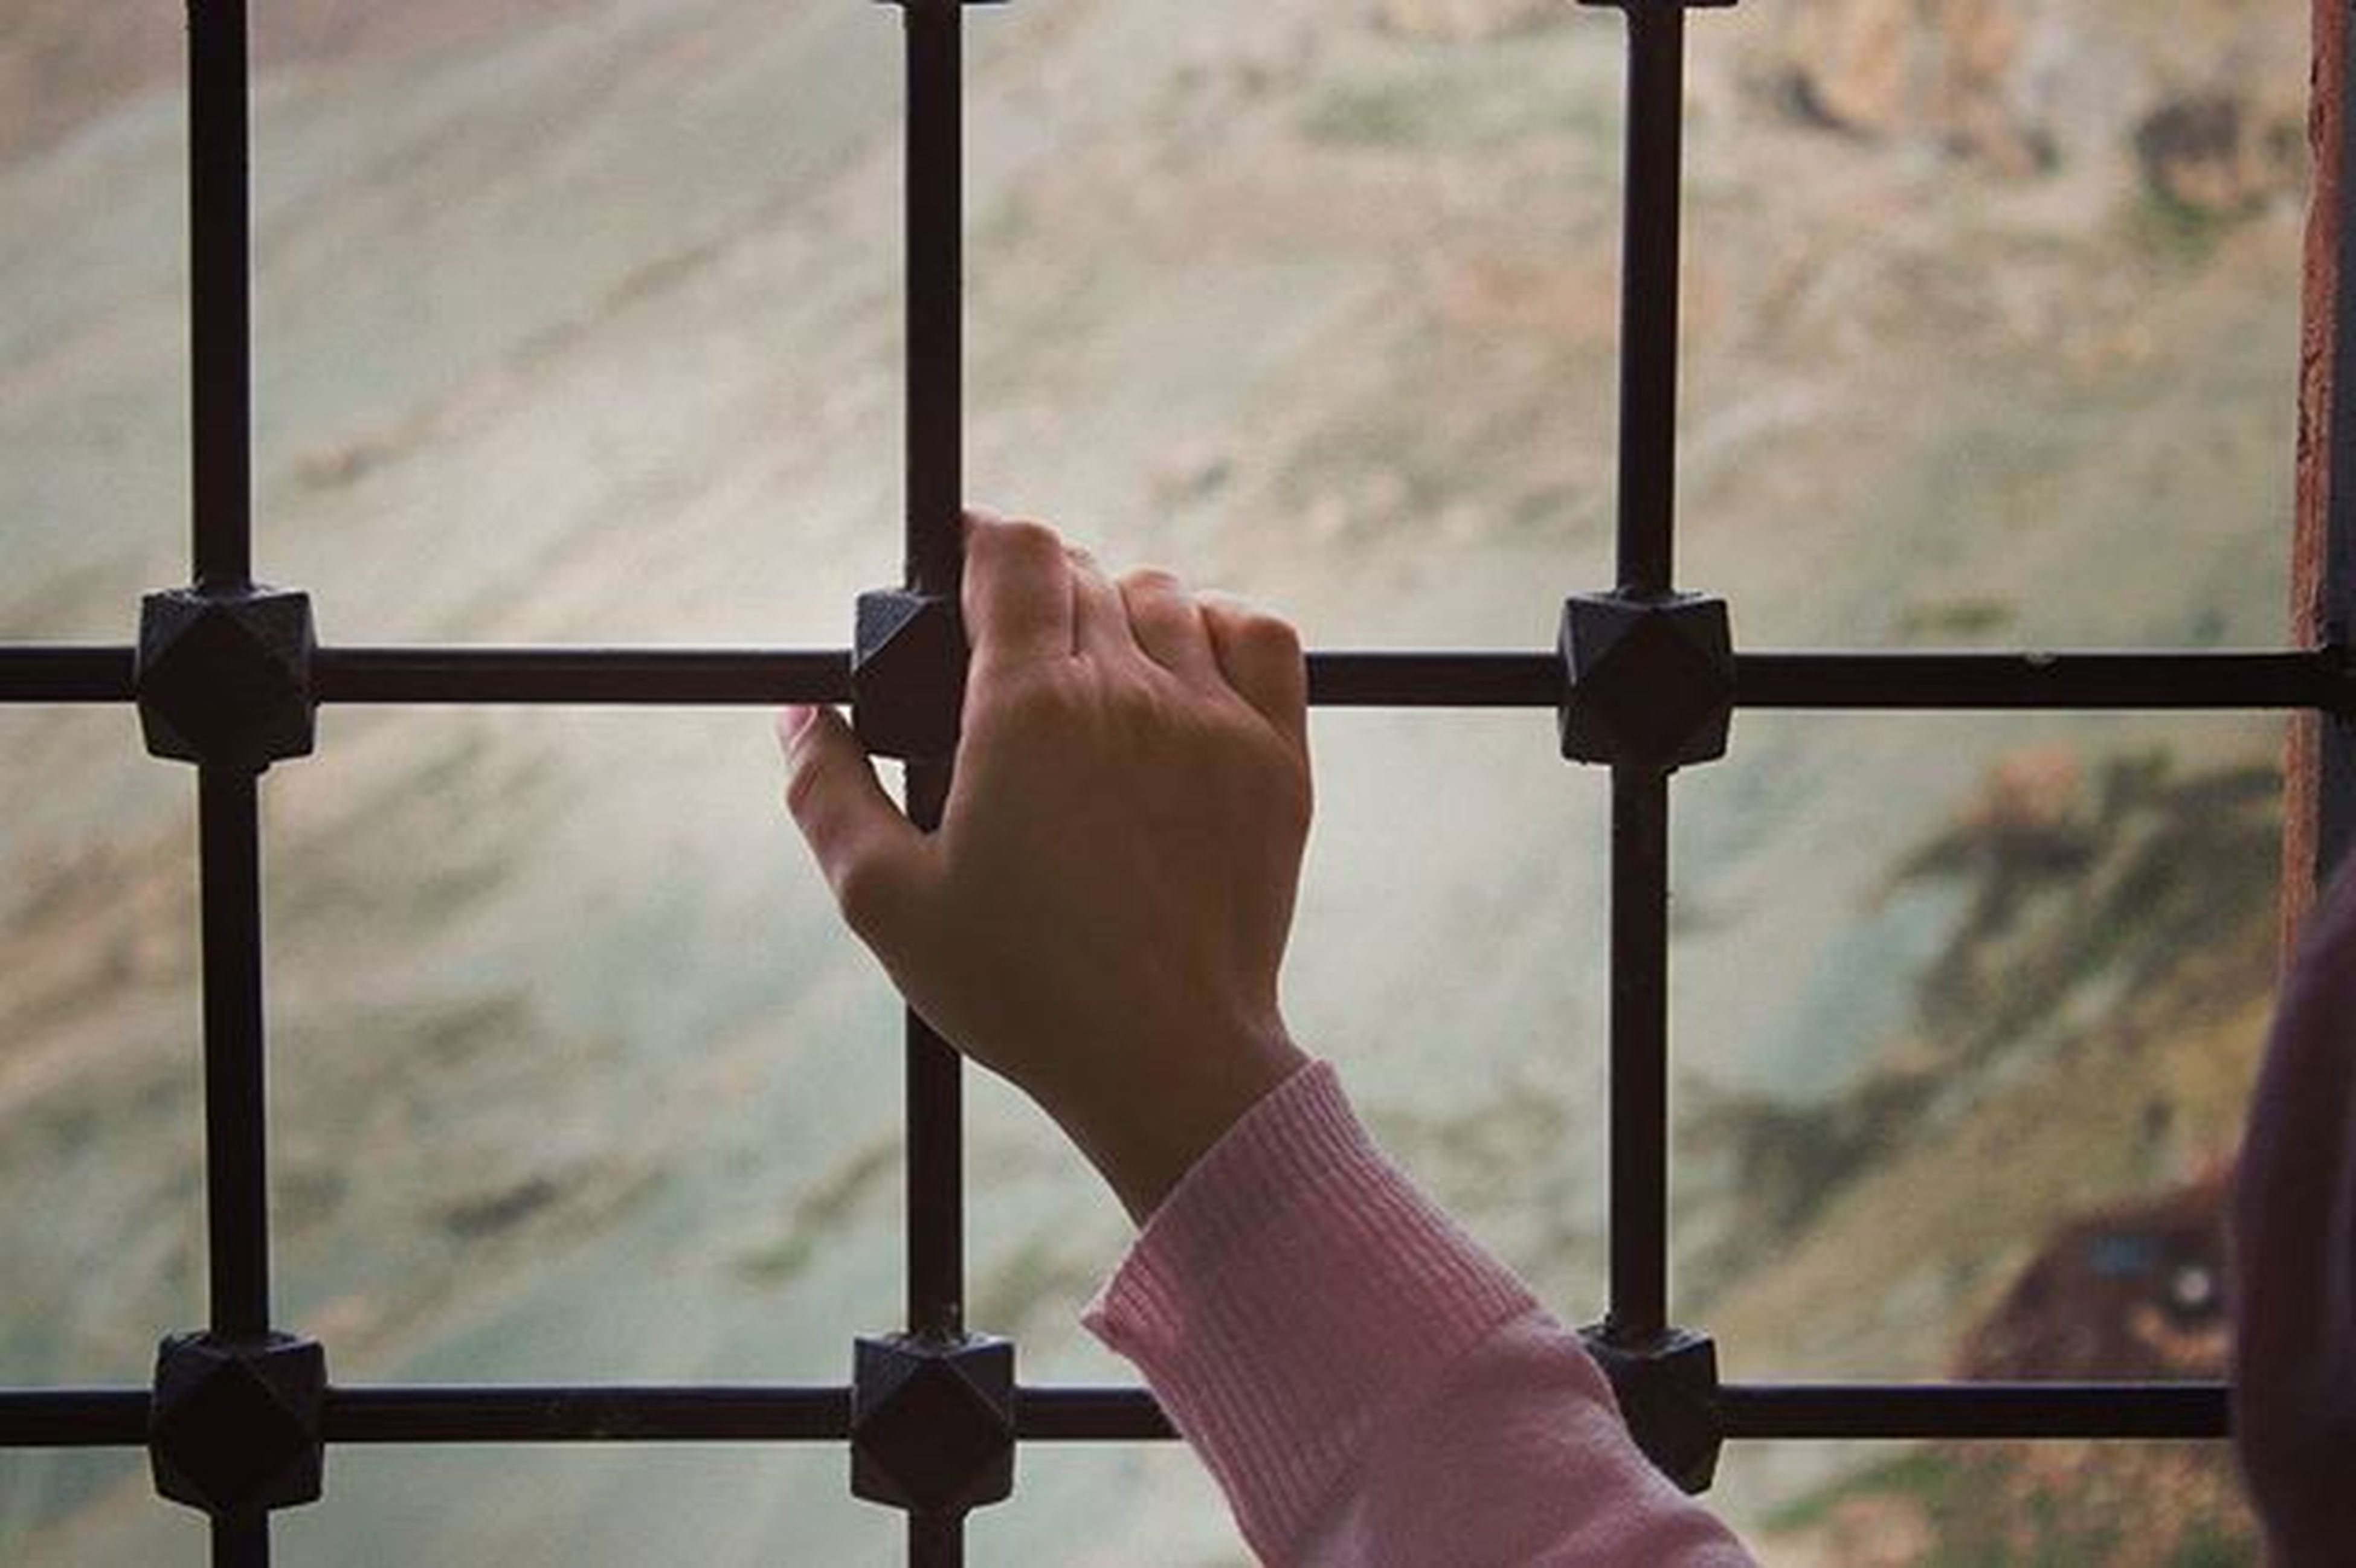 person, holding, metal, lifestyles, part of, leisure activity, focus on foreground, men, human finger, indoors, cropped, day, protection, close-up, railing, safety, sky